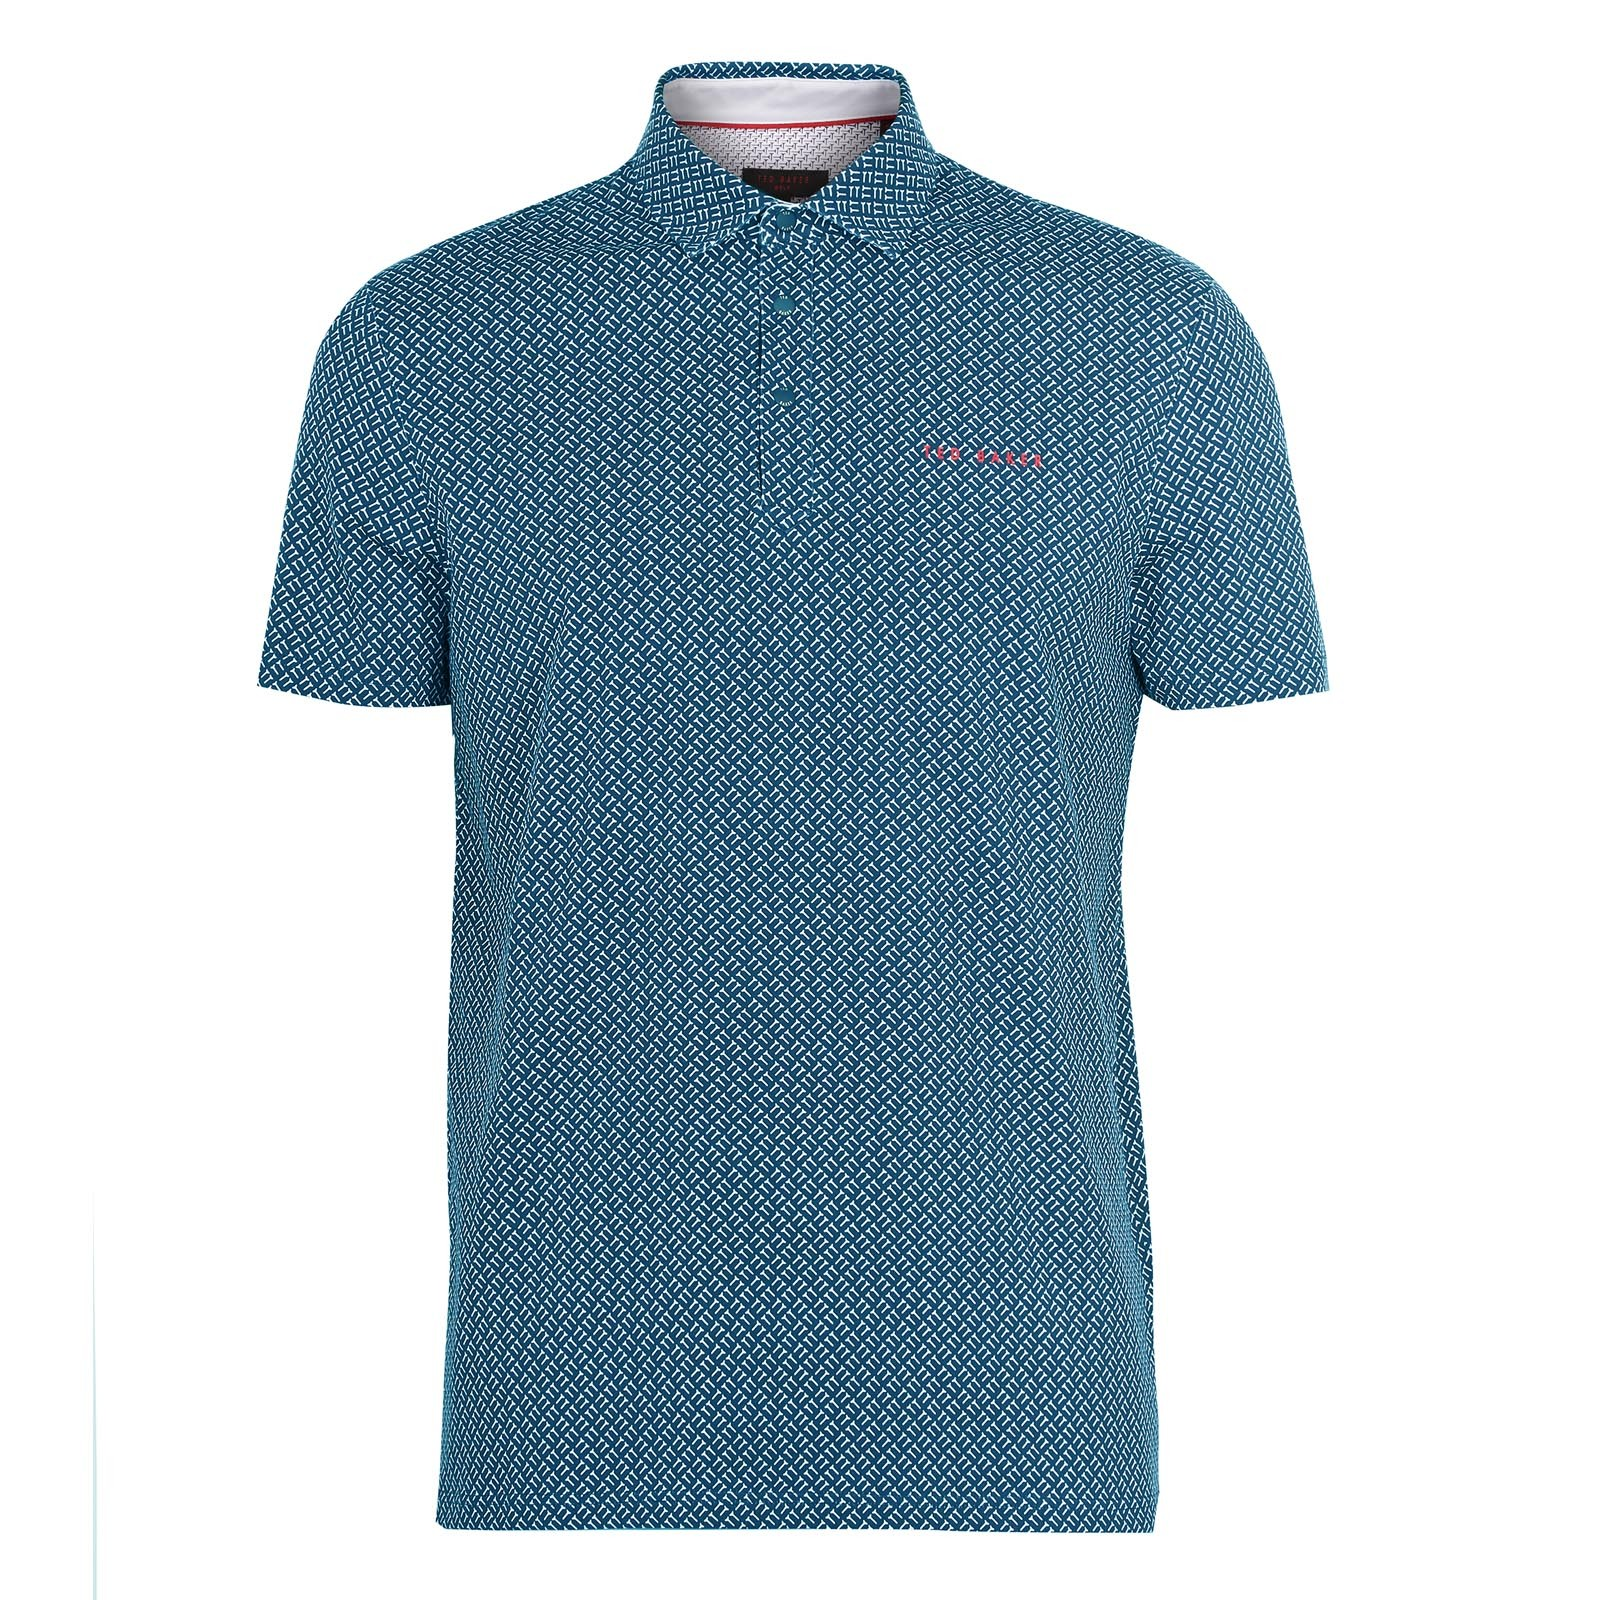 bce43ca6cb109 Ted Baker Golf Wallnot Polo Shirt